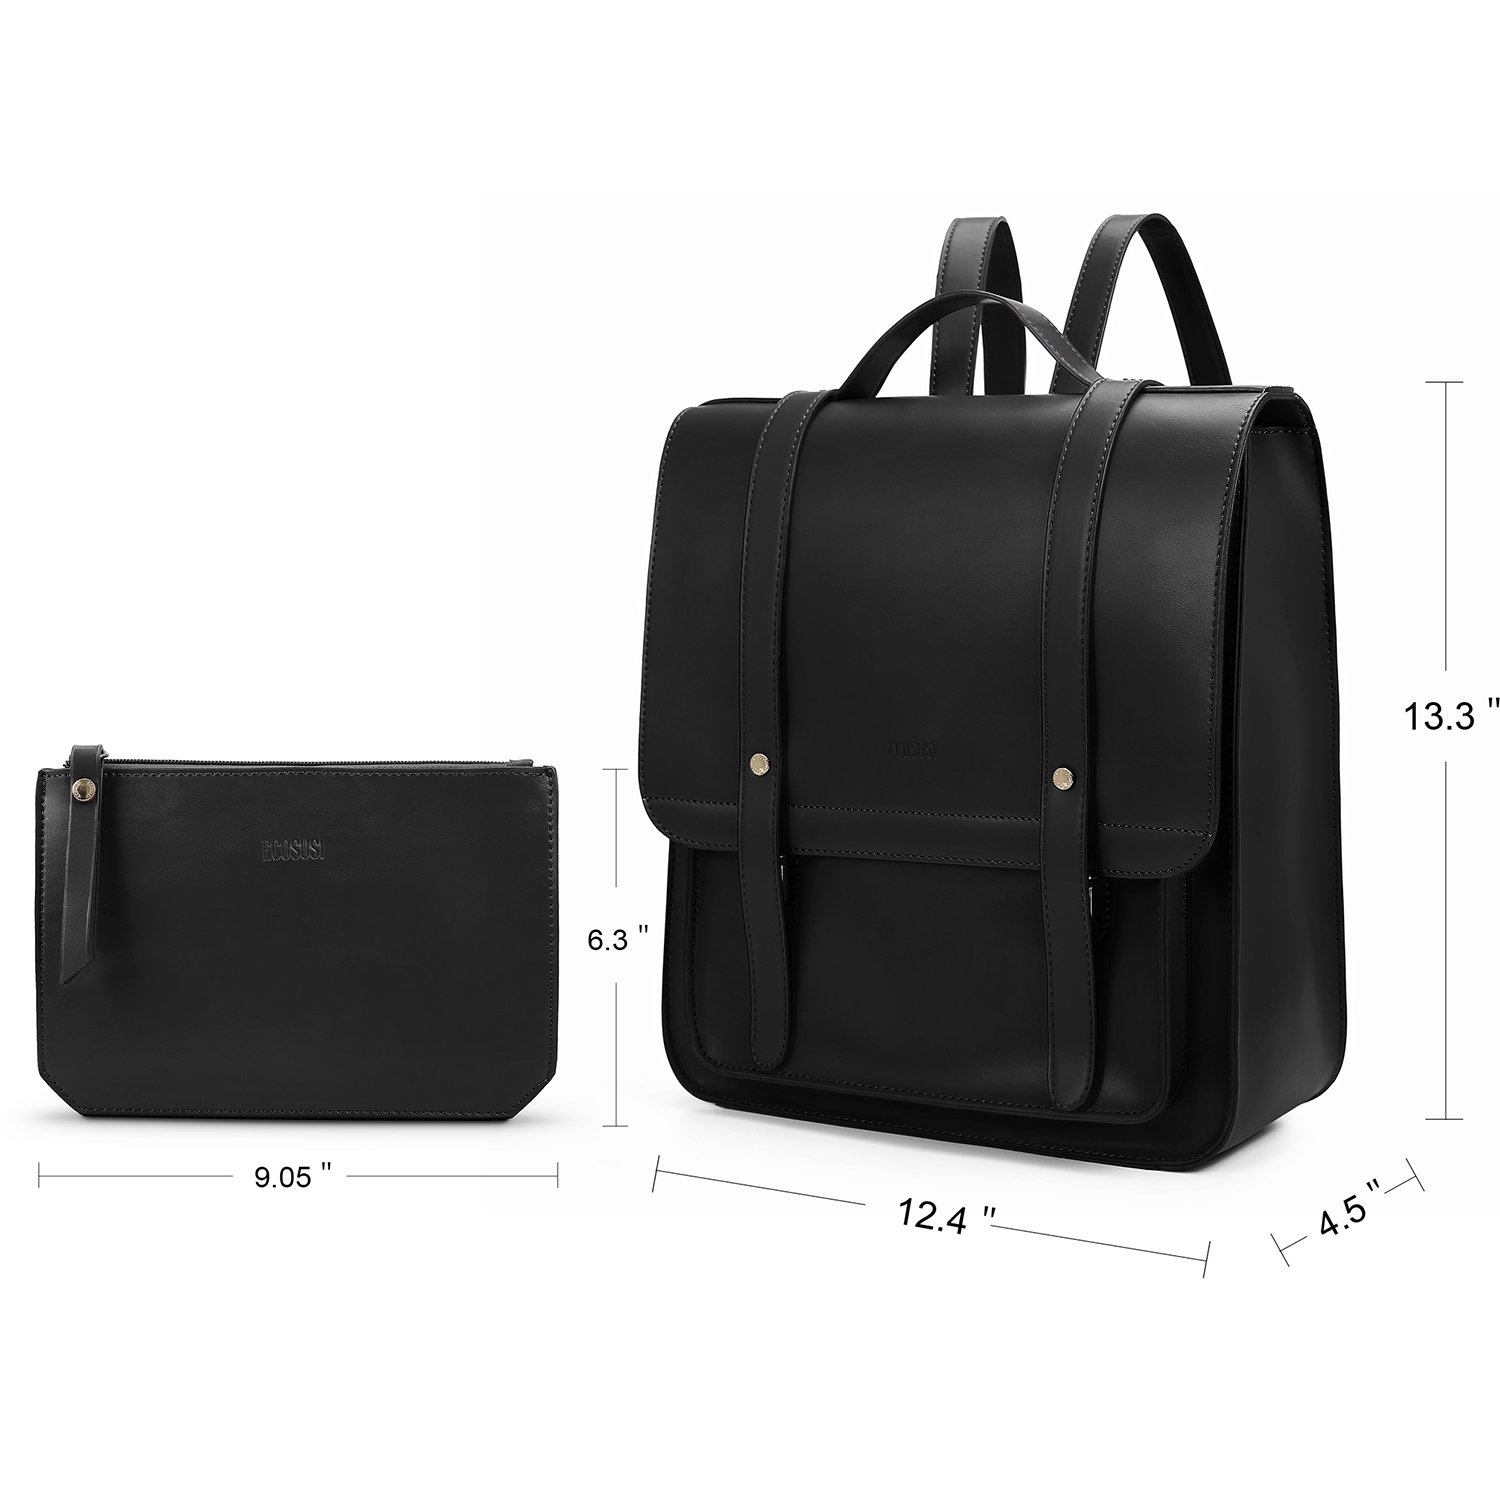 ECOSUSI Women Briefcase Laptop Backpack PU Leather Satchel Messenger Bag Fits up to 14 Inch Laptops with Small Purse, Black by ECOSUSI (Image #8)